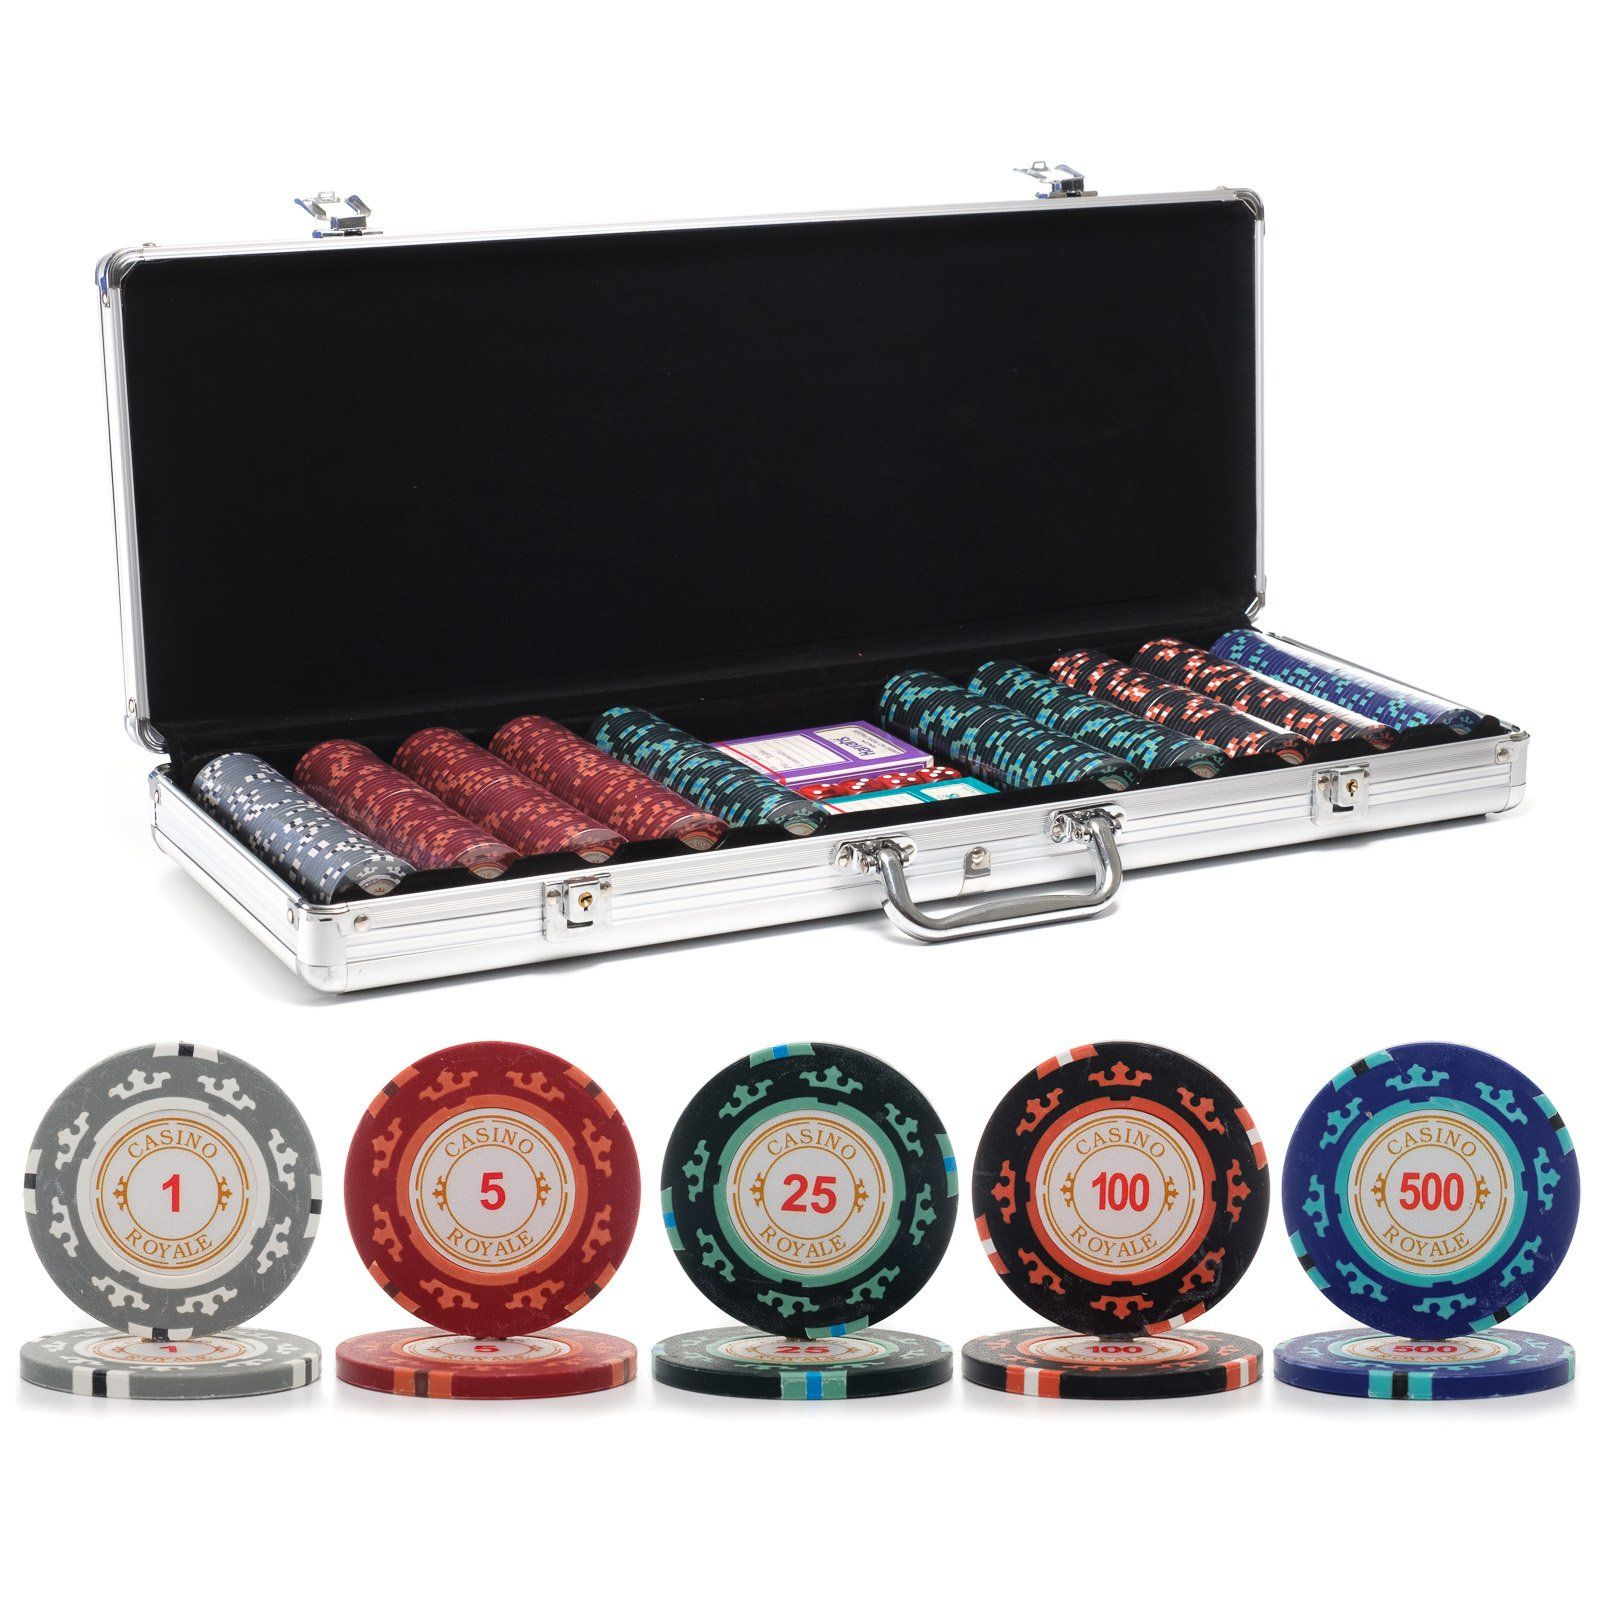 2 Decks of Playing Cards and 2 Cut Cards Da Vinci 500 Poker Chip Set with Case Dealer Buttons